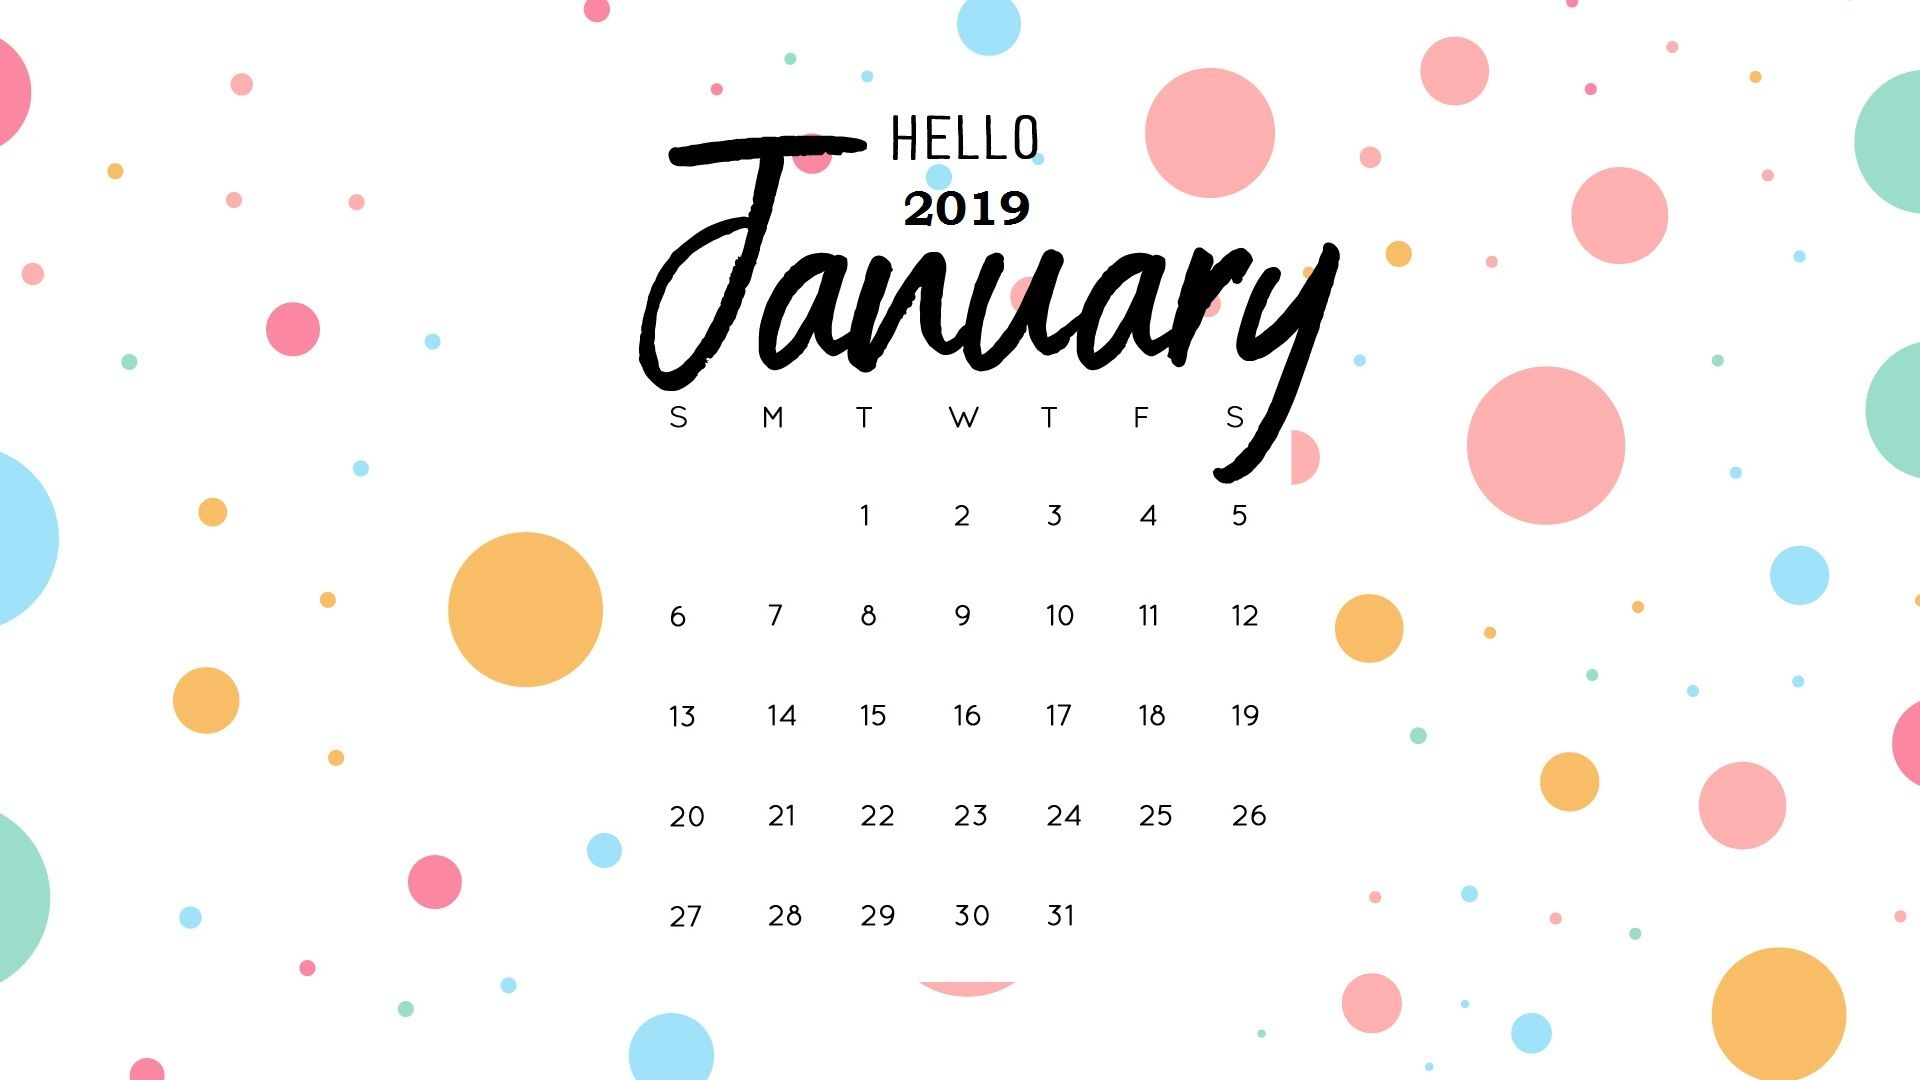 january free 2019 calendar template download december 2018::January 2019 Calendar Portrait